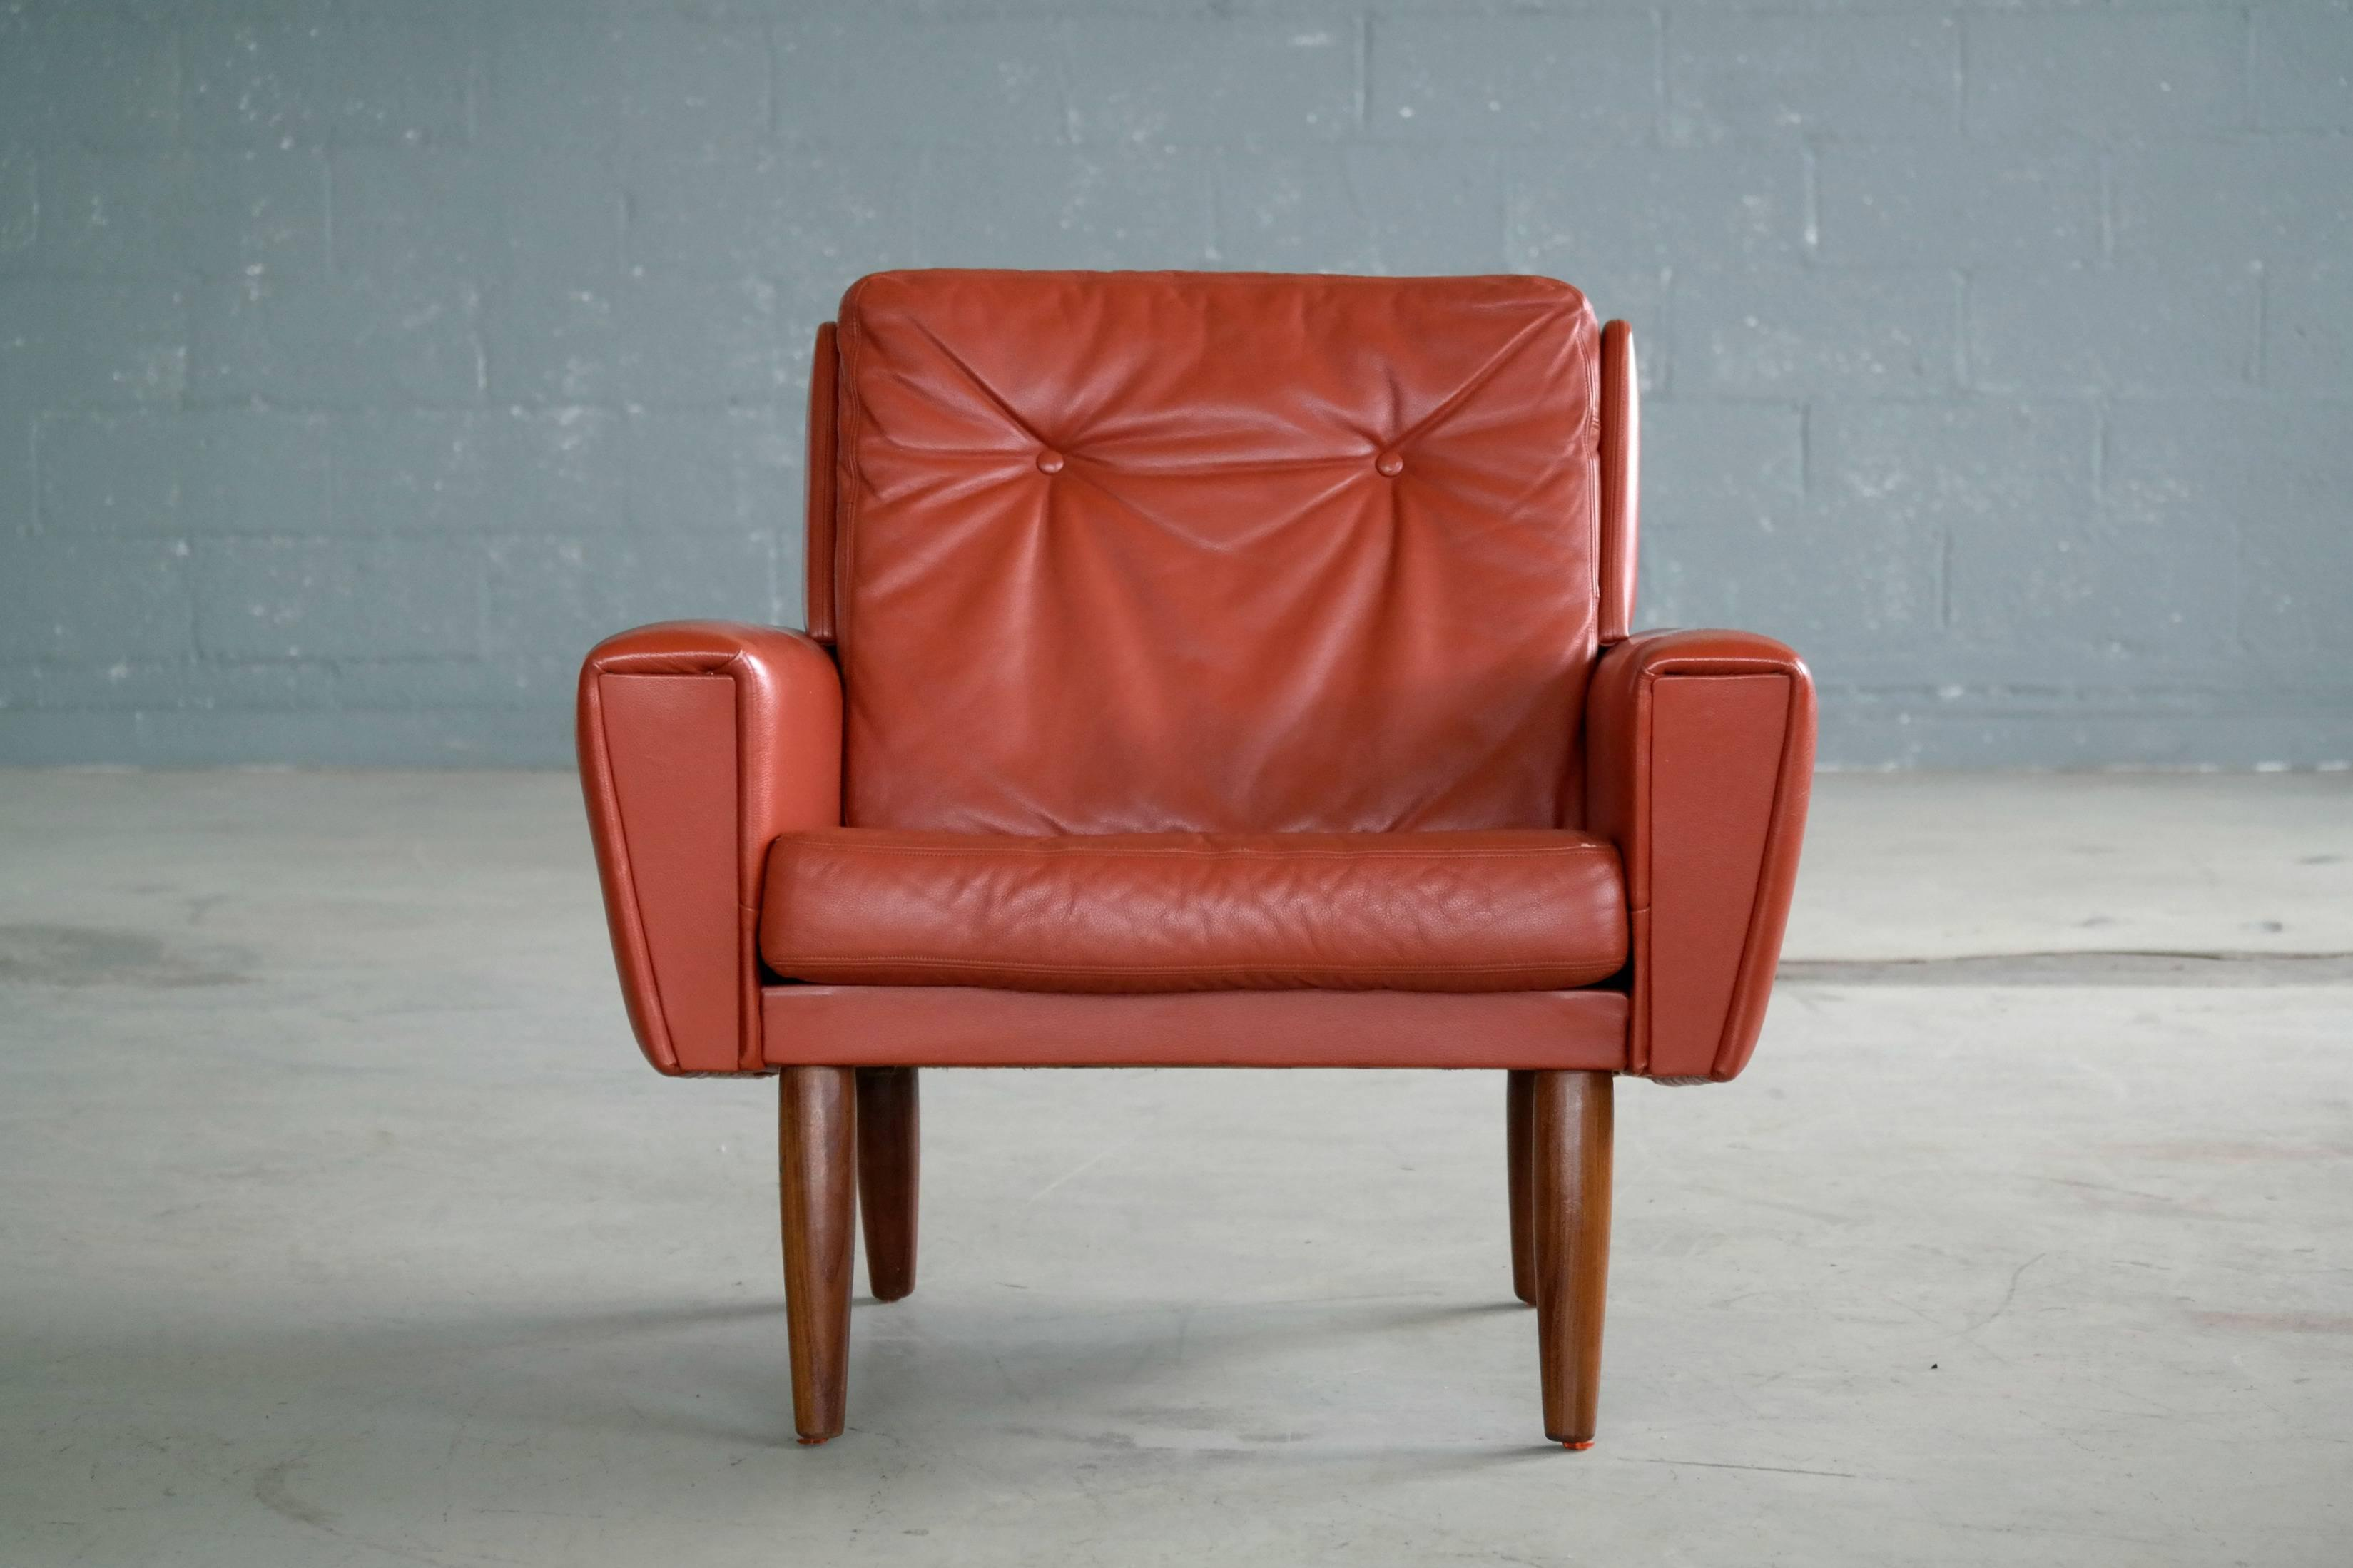 Very Cool 1960s Danish Lounge Chair In Red Leather Raised On Solid Teak  Legs. The